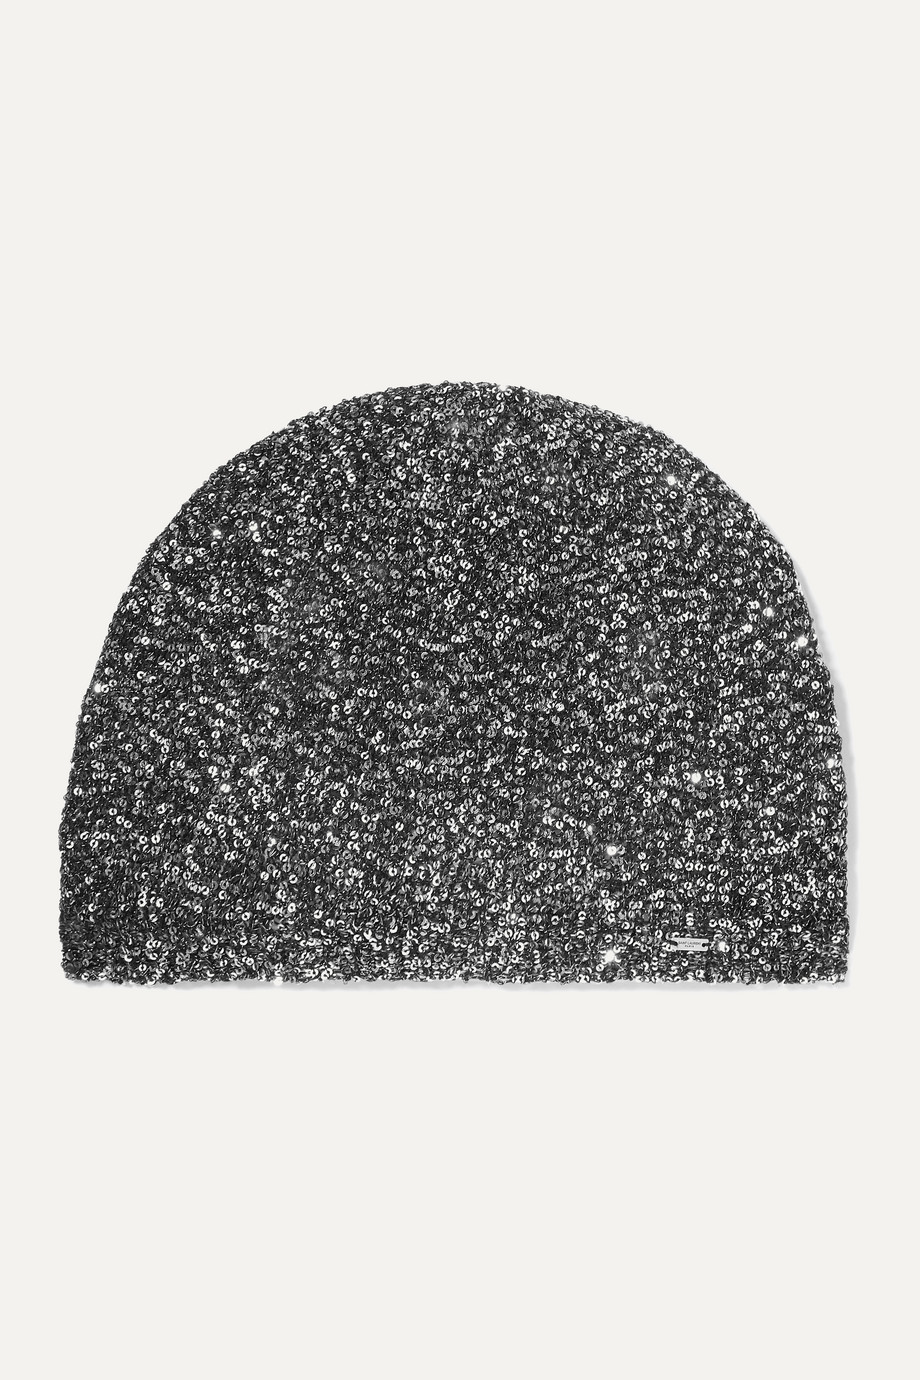 SAINT LAURENT Sequined crochet-knit beanie